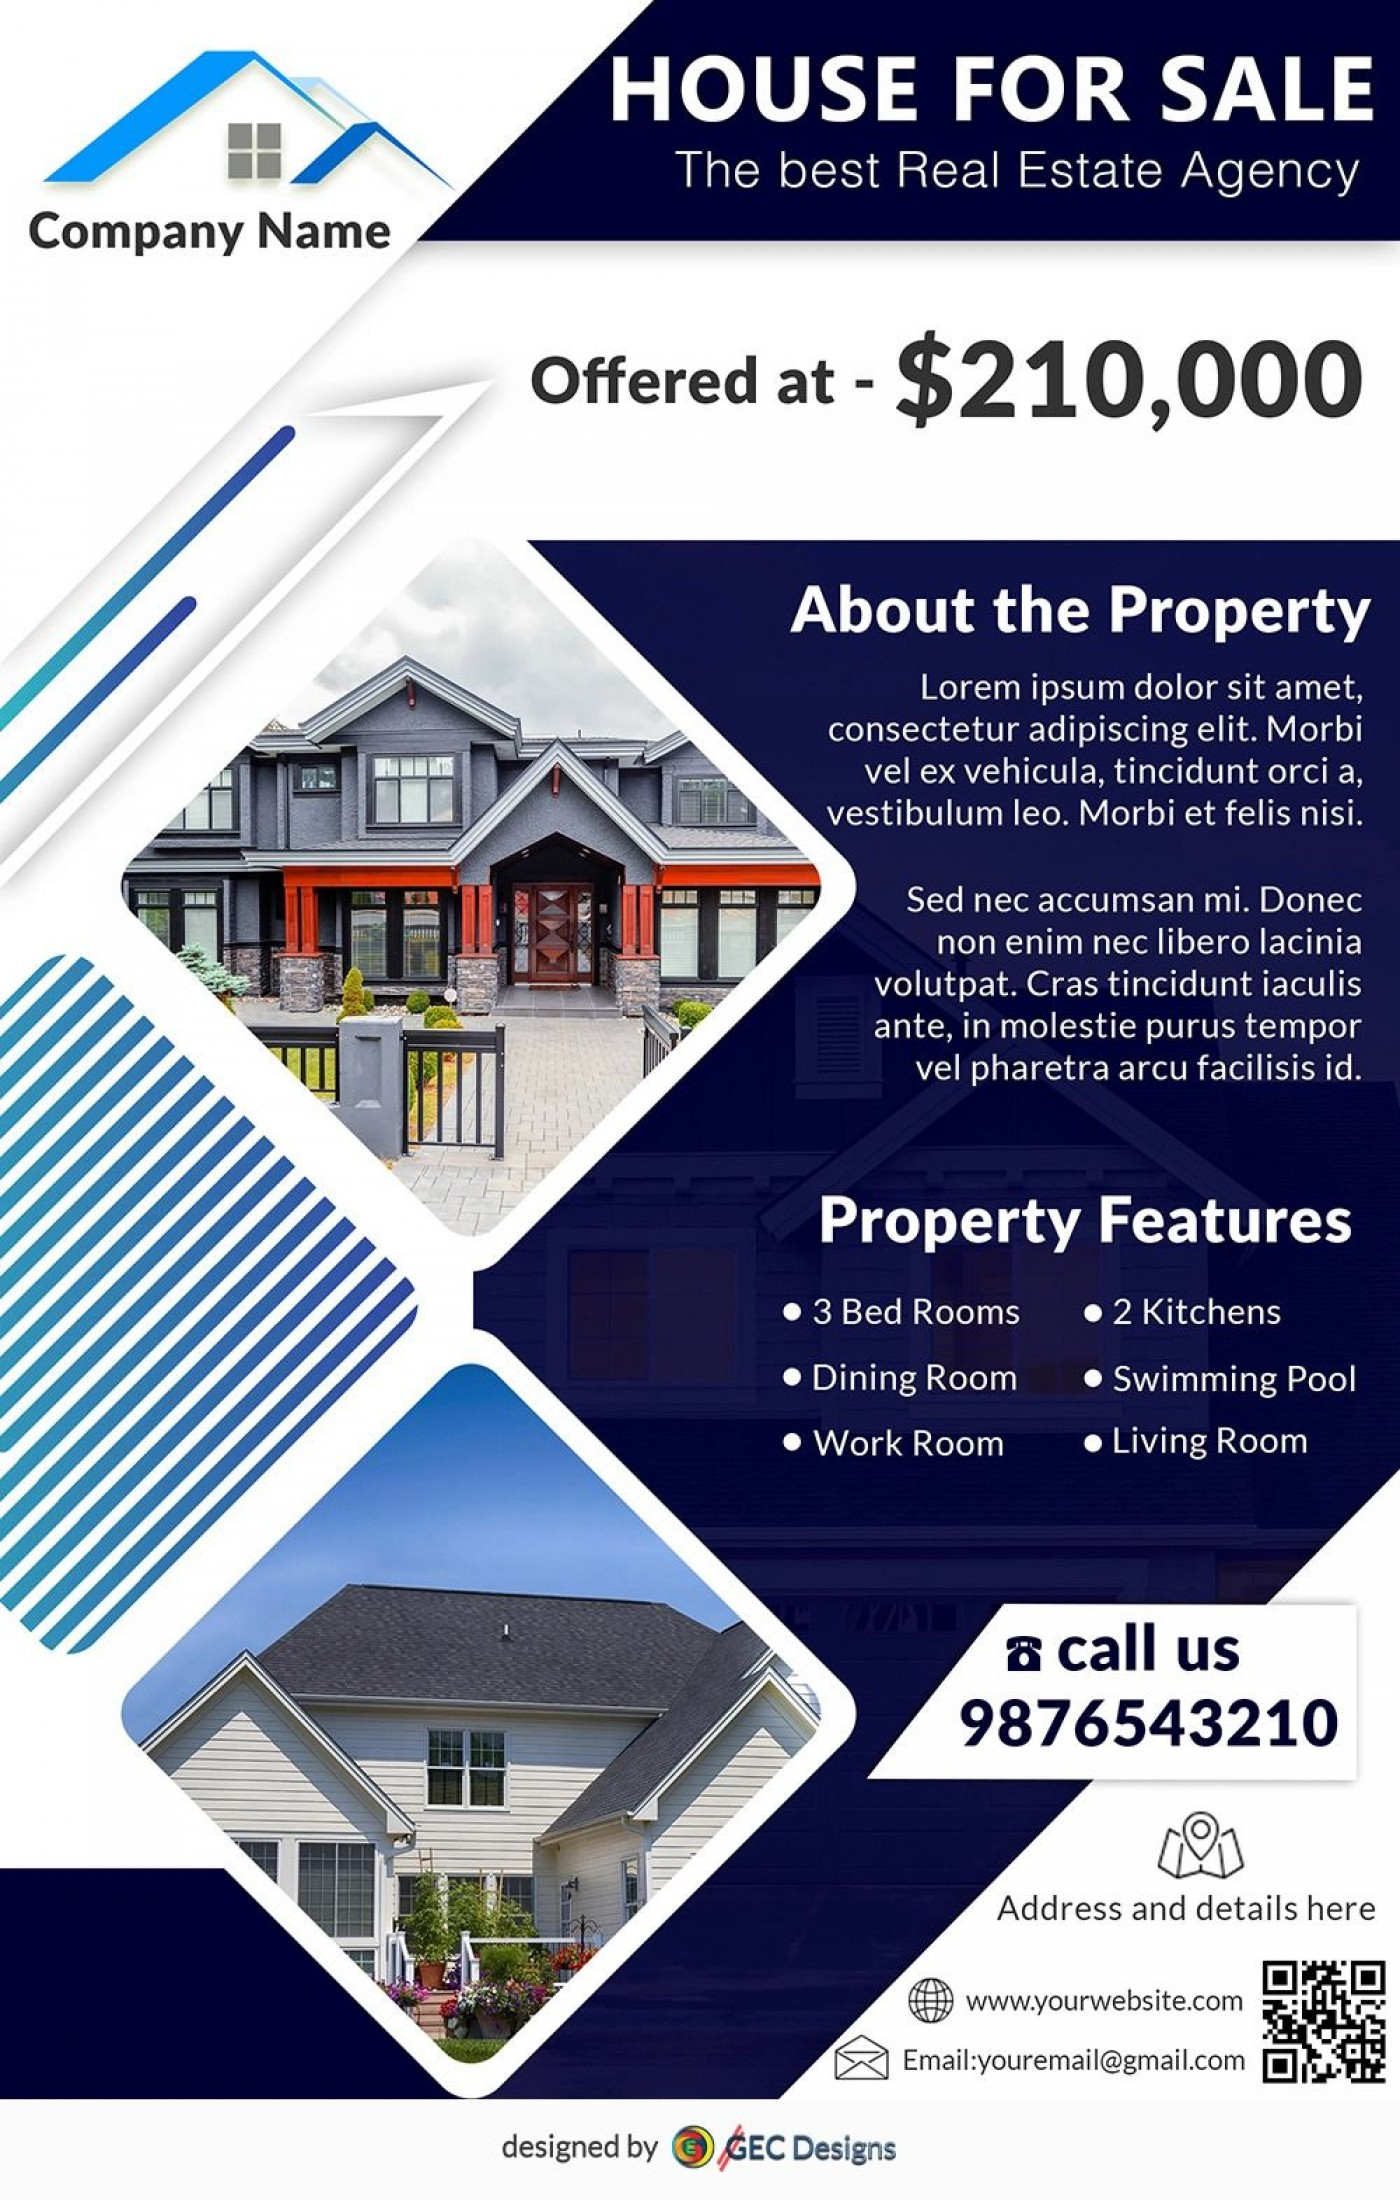 006 Archaicawful House For Sale Flyer Template Highest Clarity  Free Real Estate Example By Owner1400